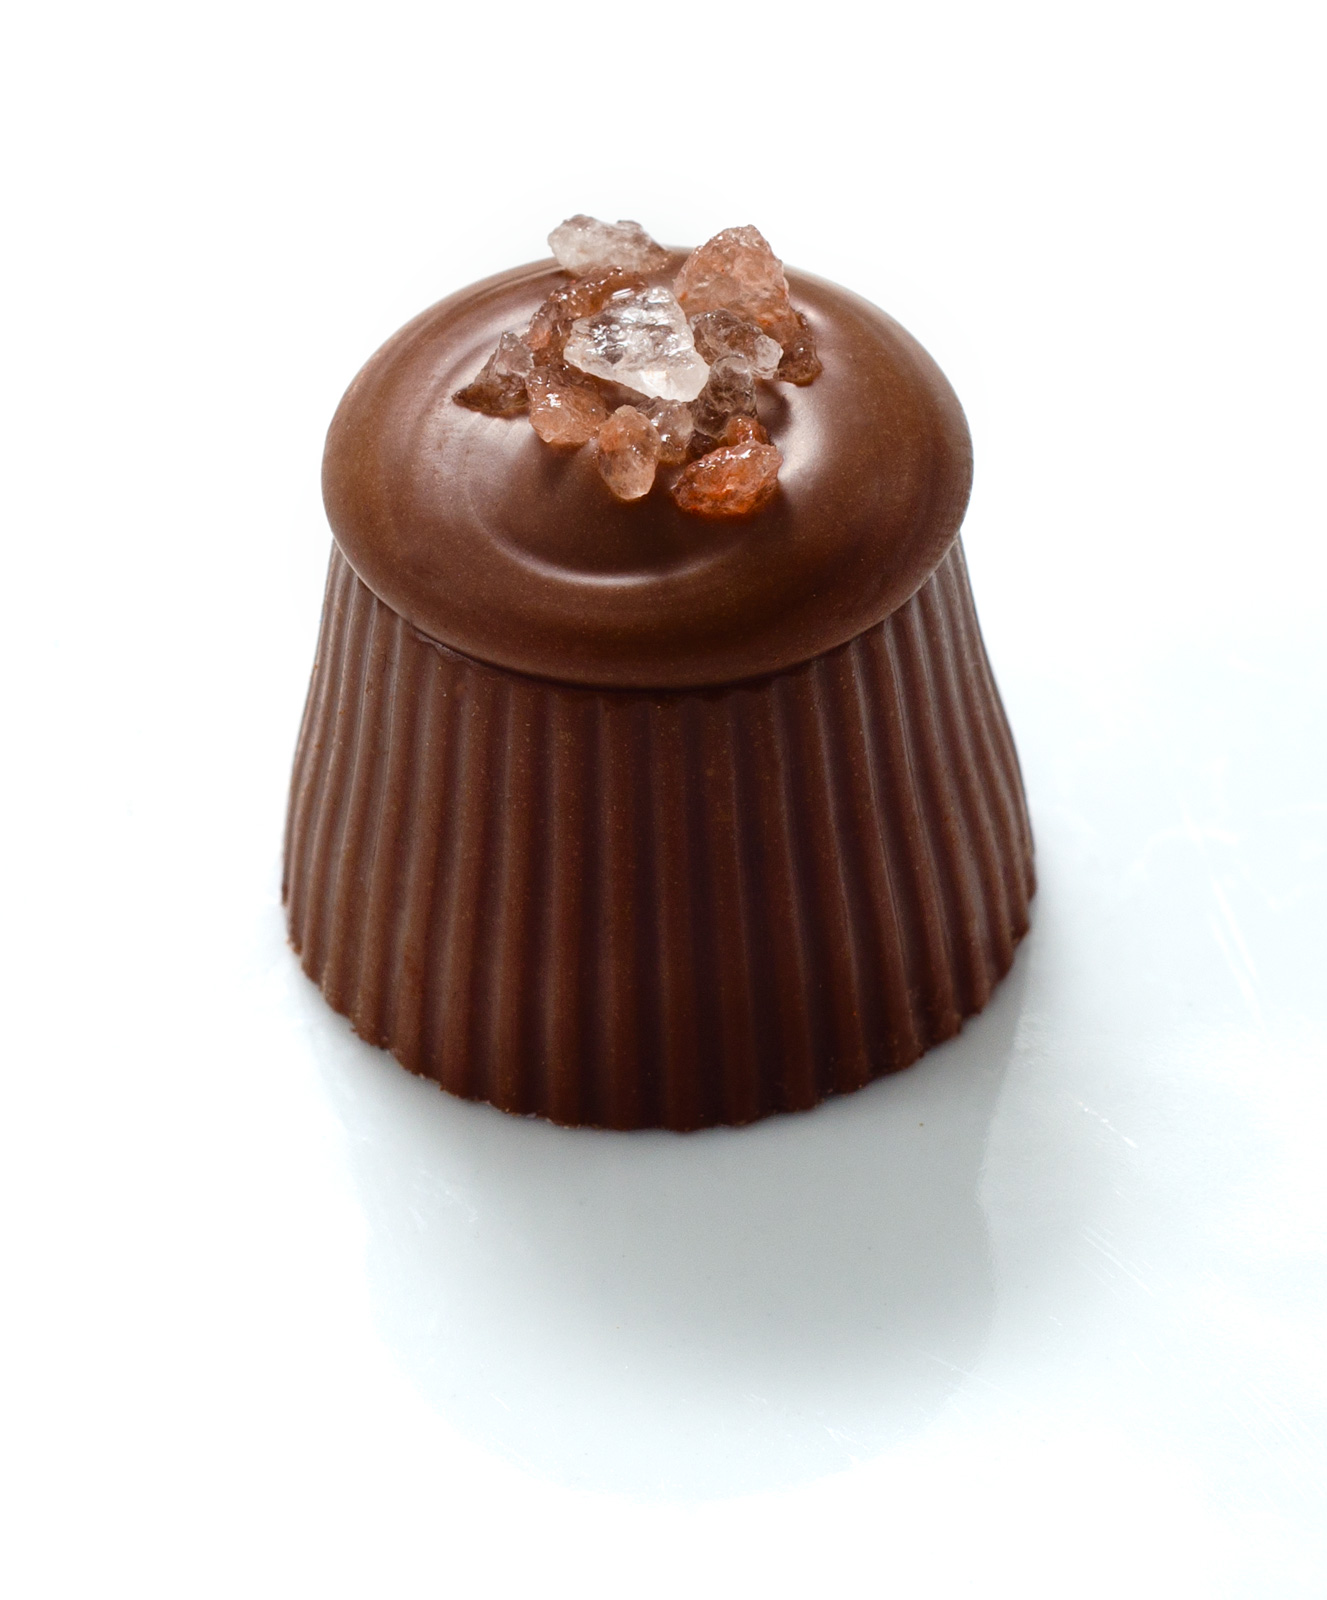 <b>SALTED PEANUT</b><P ALIGN=Left>Milk chocolate casing with peanut butter center finished with Himalayan pink salt</P>